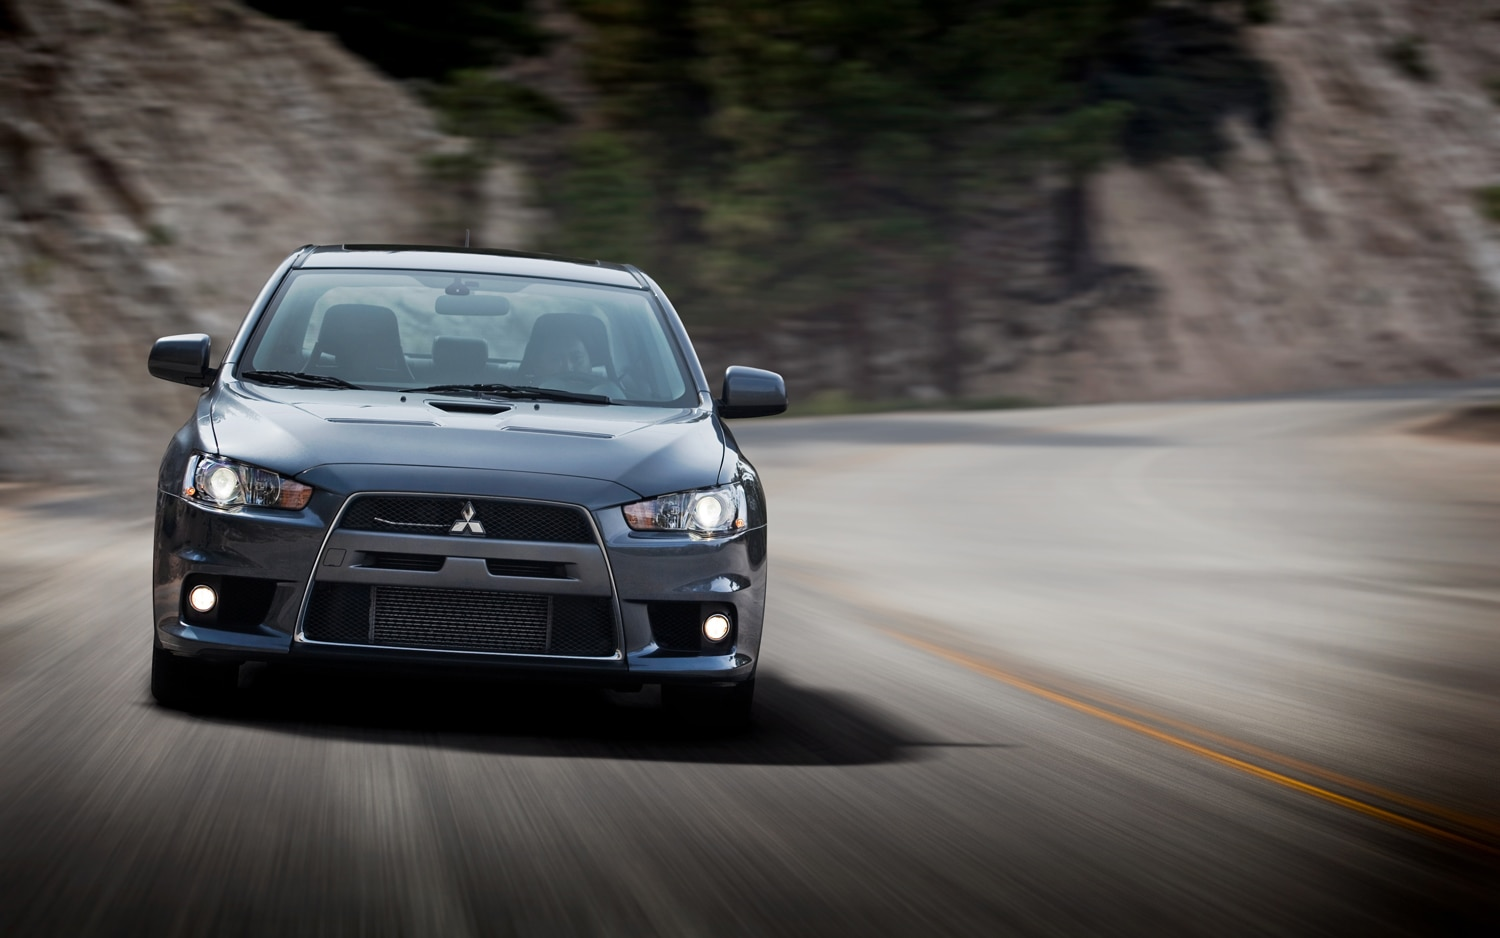 2012 Mitsubishi Lancer Evolution MR Front View1